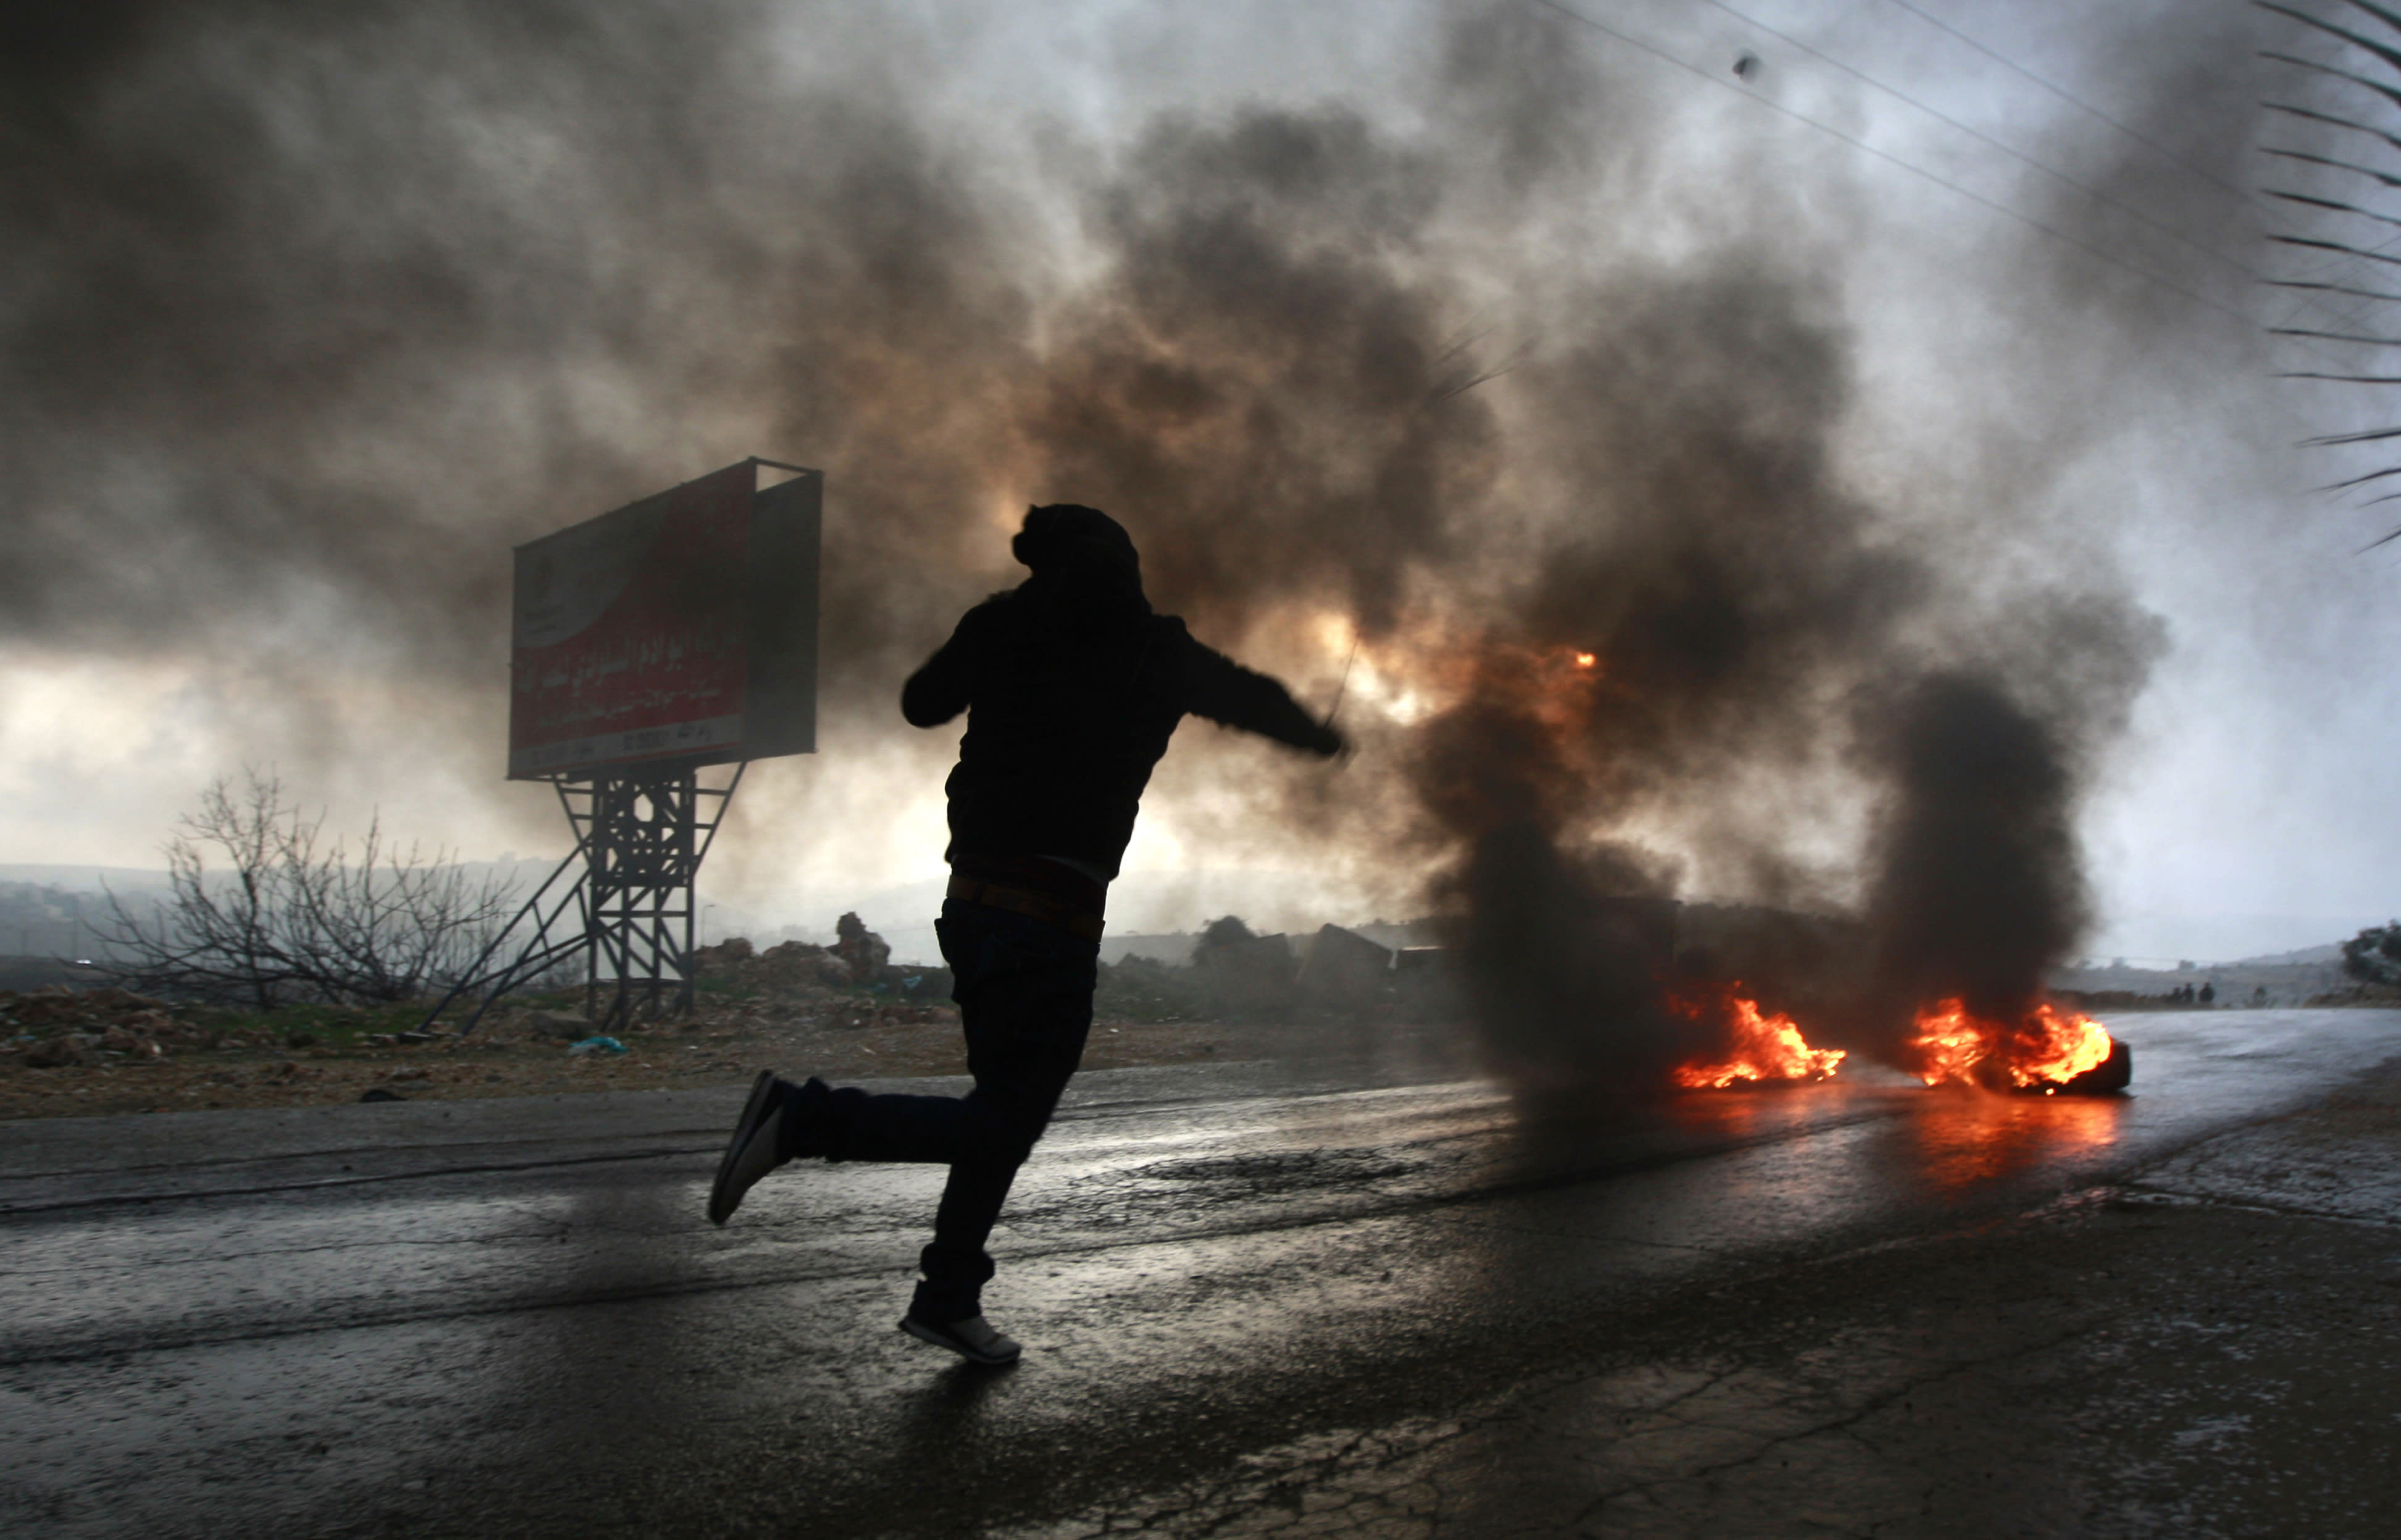 A Palestinian uses a slingshot to hurl stones at Israeli forces during clashes at a protest against the expansion of the nearby Jewish settlement Ofra outside the village of Silwad, near the West Bank city of Ramallah, Friday, Jan. 10, 2014. (AP Photo/Majdi Mohammed)